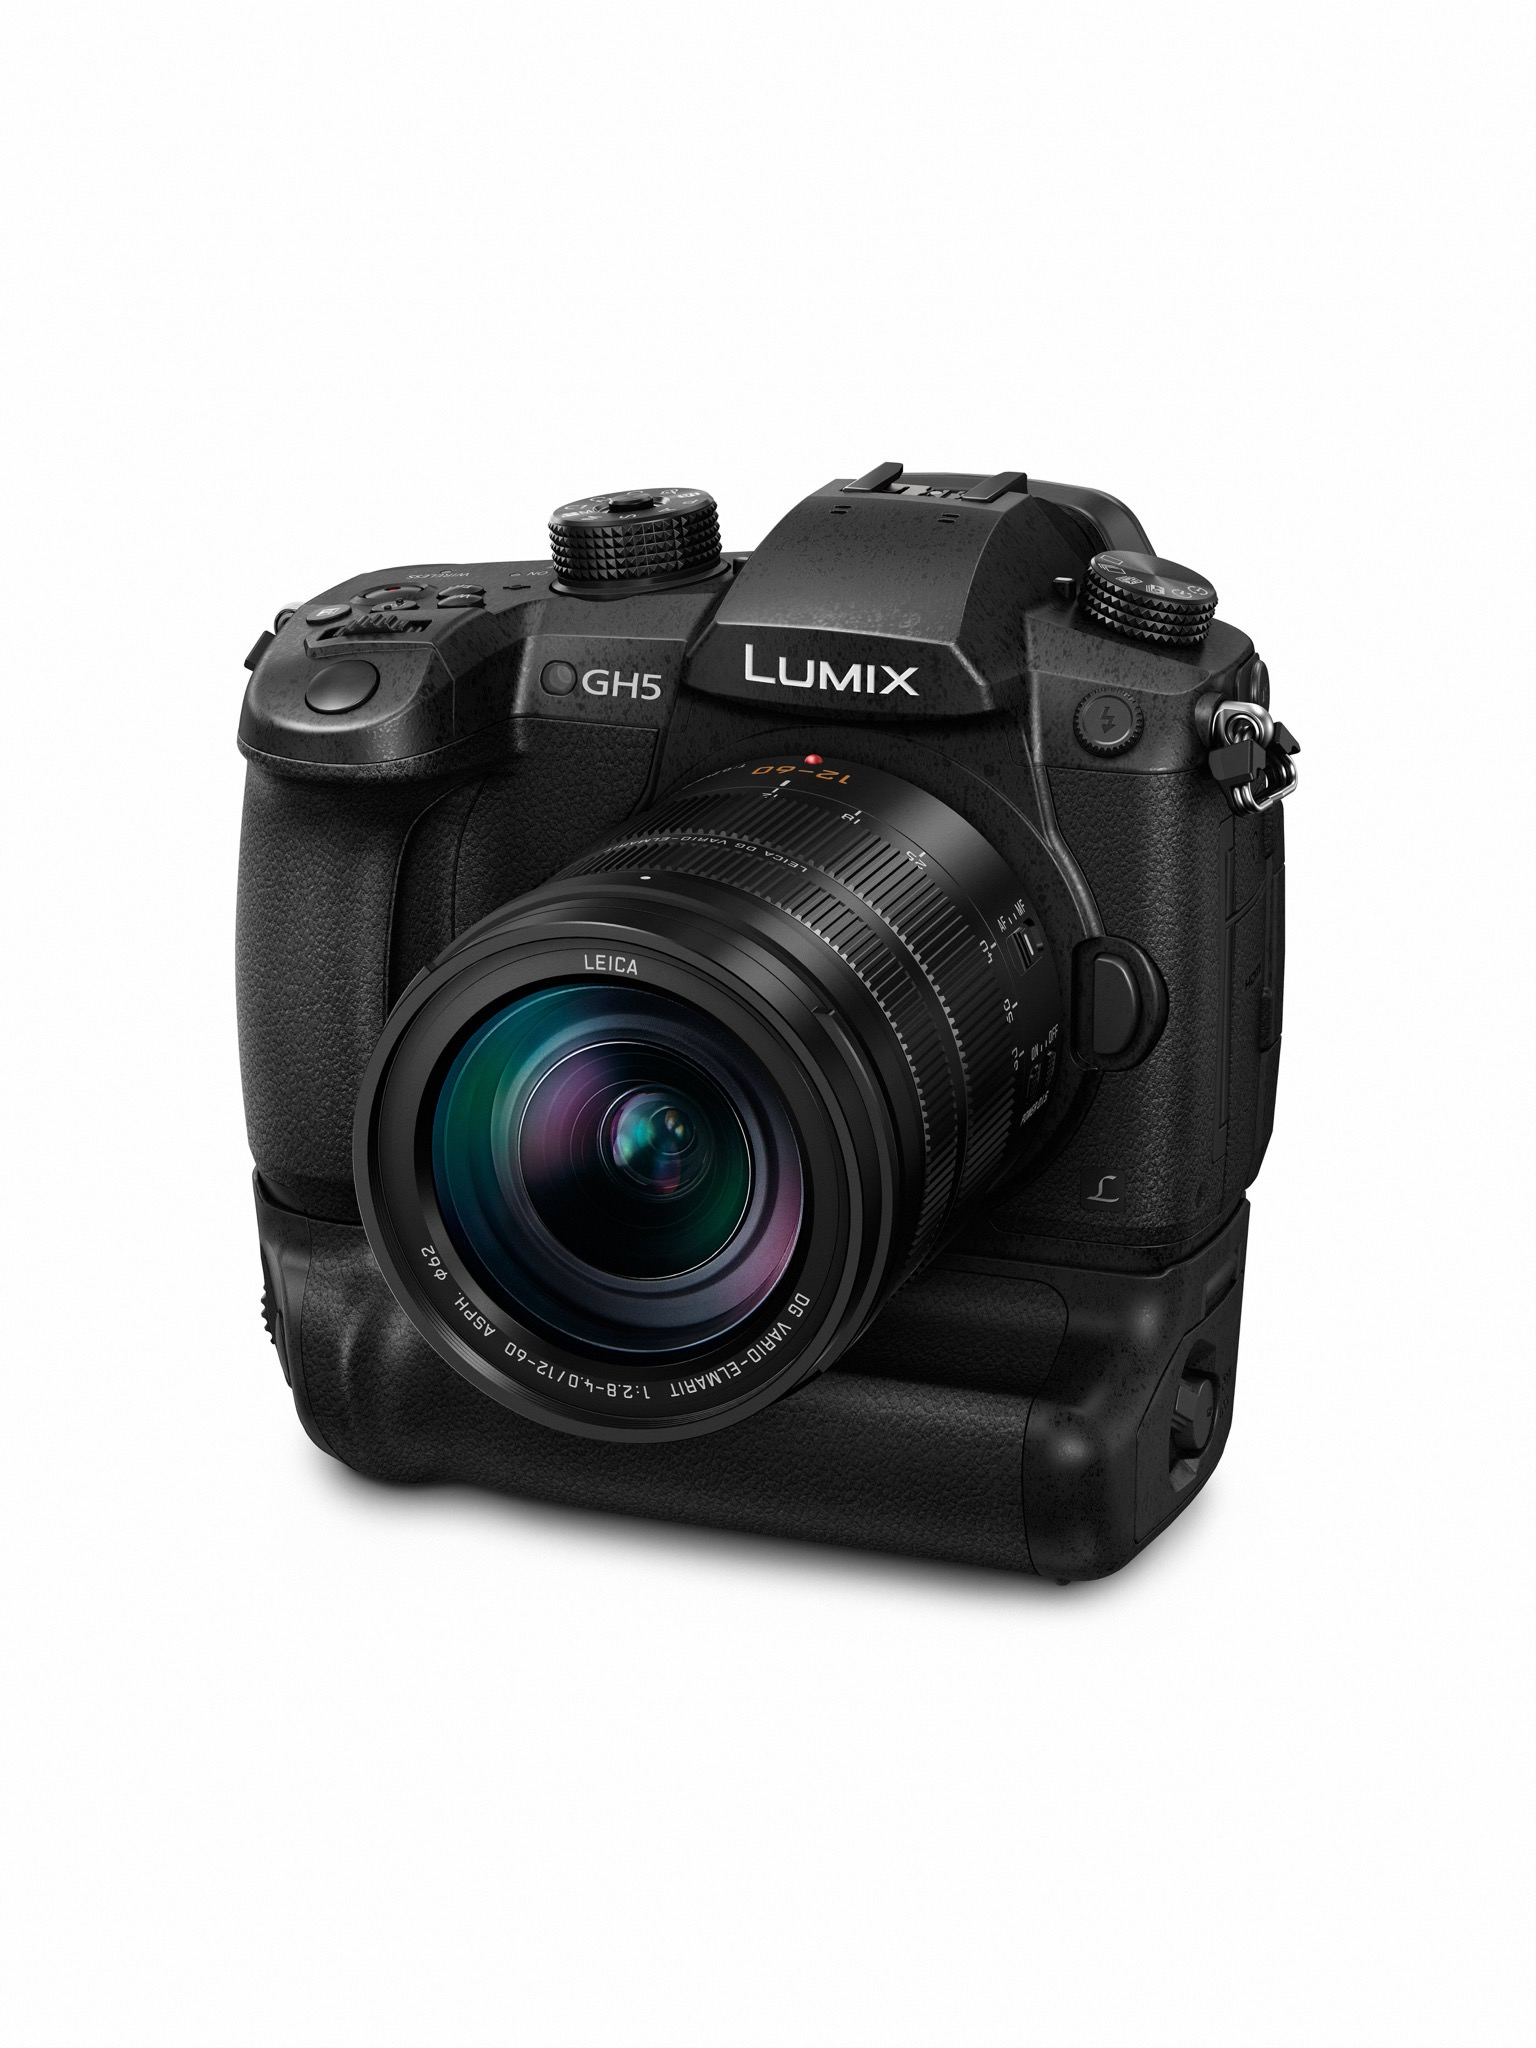 LUMIX GH5 with the BGGH5 Battery Grip